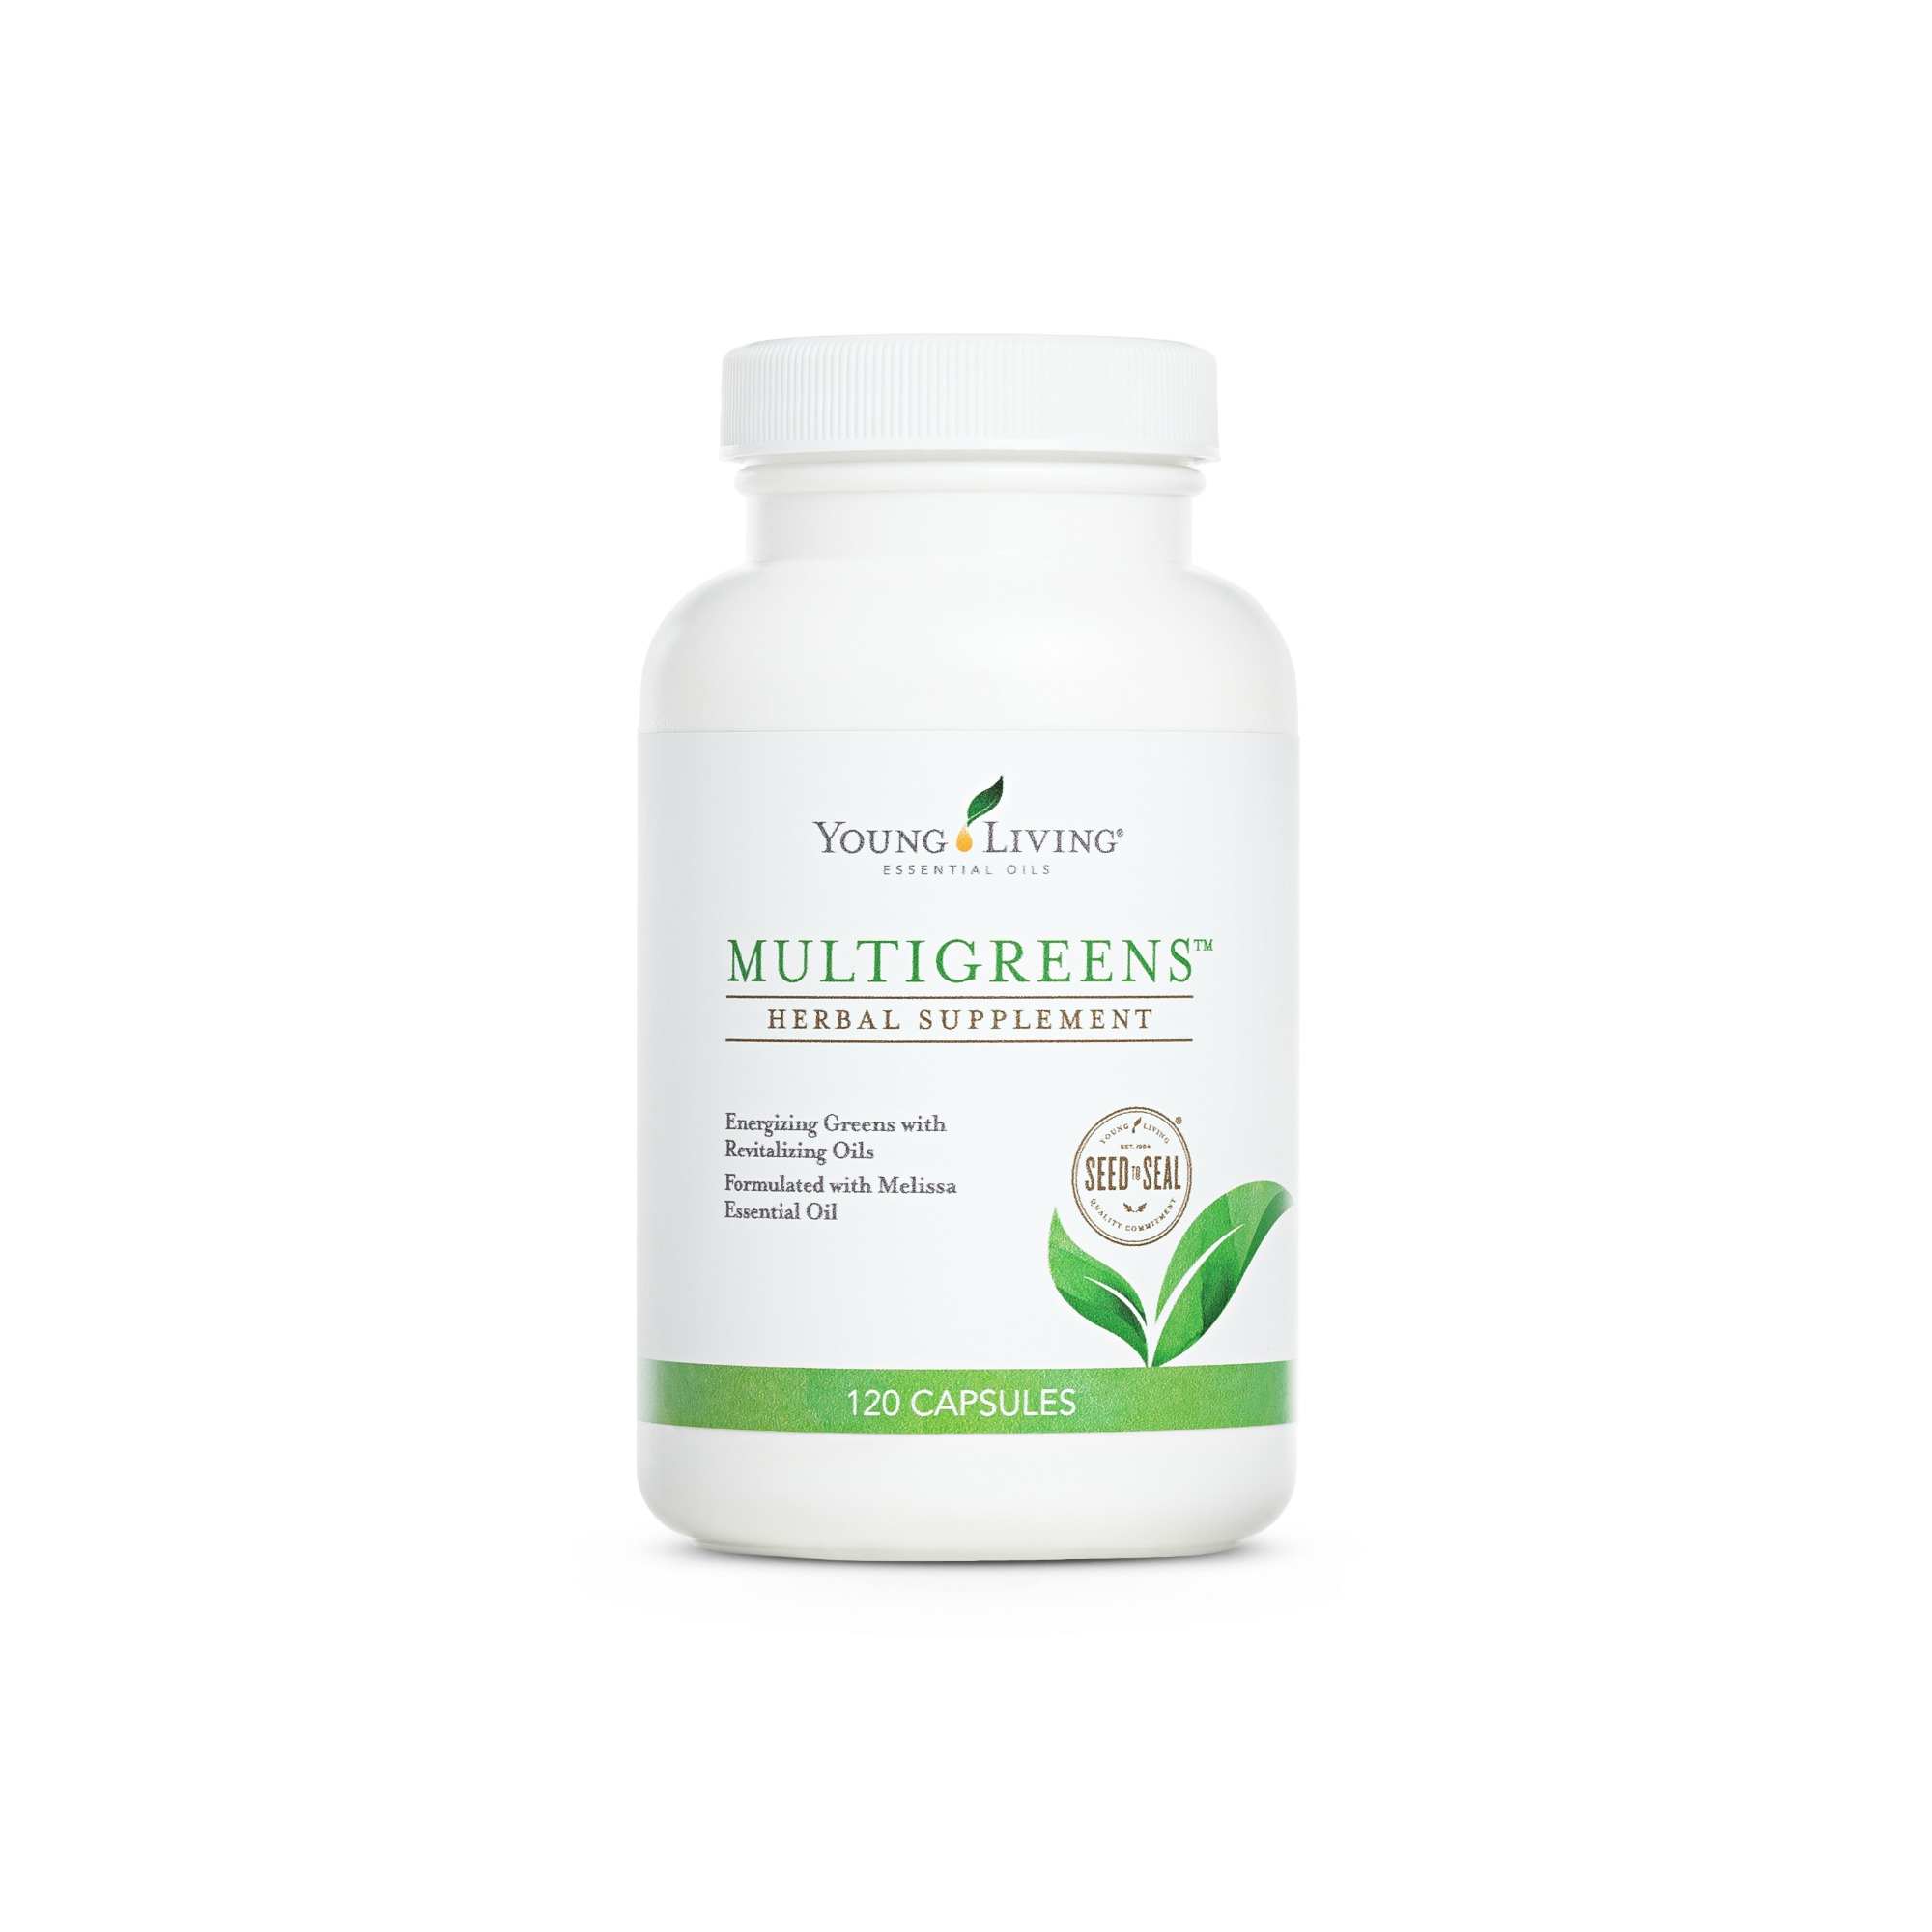 MULTIGREENS    MultiGreens is a nutritious chlorophyll formula designed to boost vitality by working with the glandular, nervous, and circulatory systems. MultiGreens is made with spirulina, alfalfa sprouts, barley grass, bee pollen, eleuthero, Pacific kelp, and therapeutic-grade essential oils. Adding these greens to your diet will also help support your immune system and keep your digestive tract in working order.   Click here   to learn more about this product.